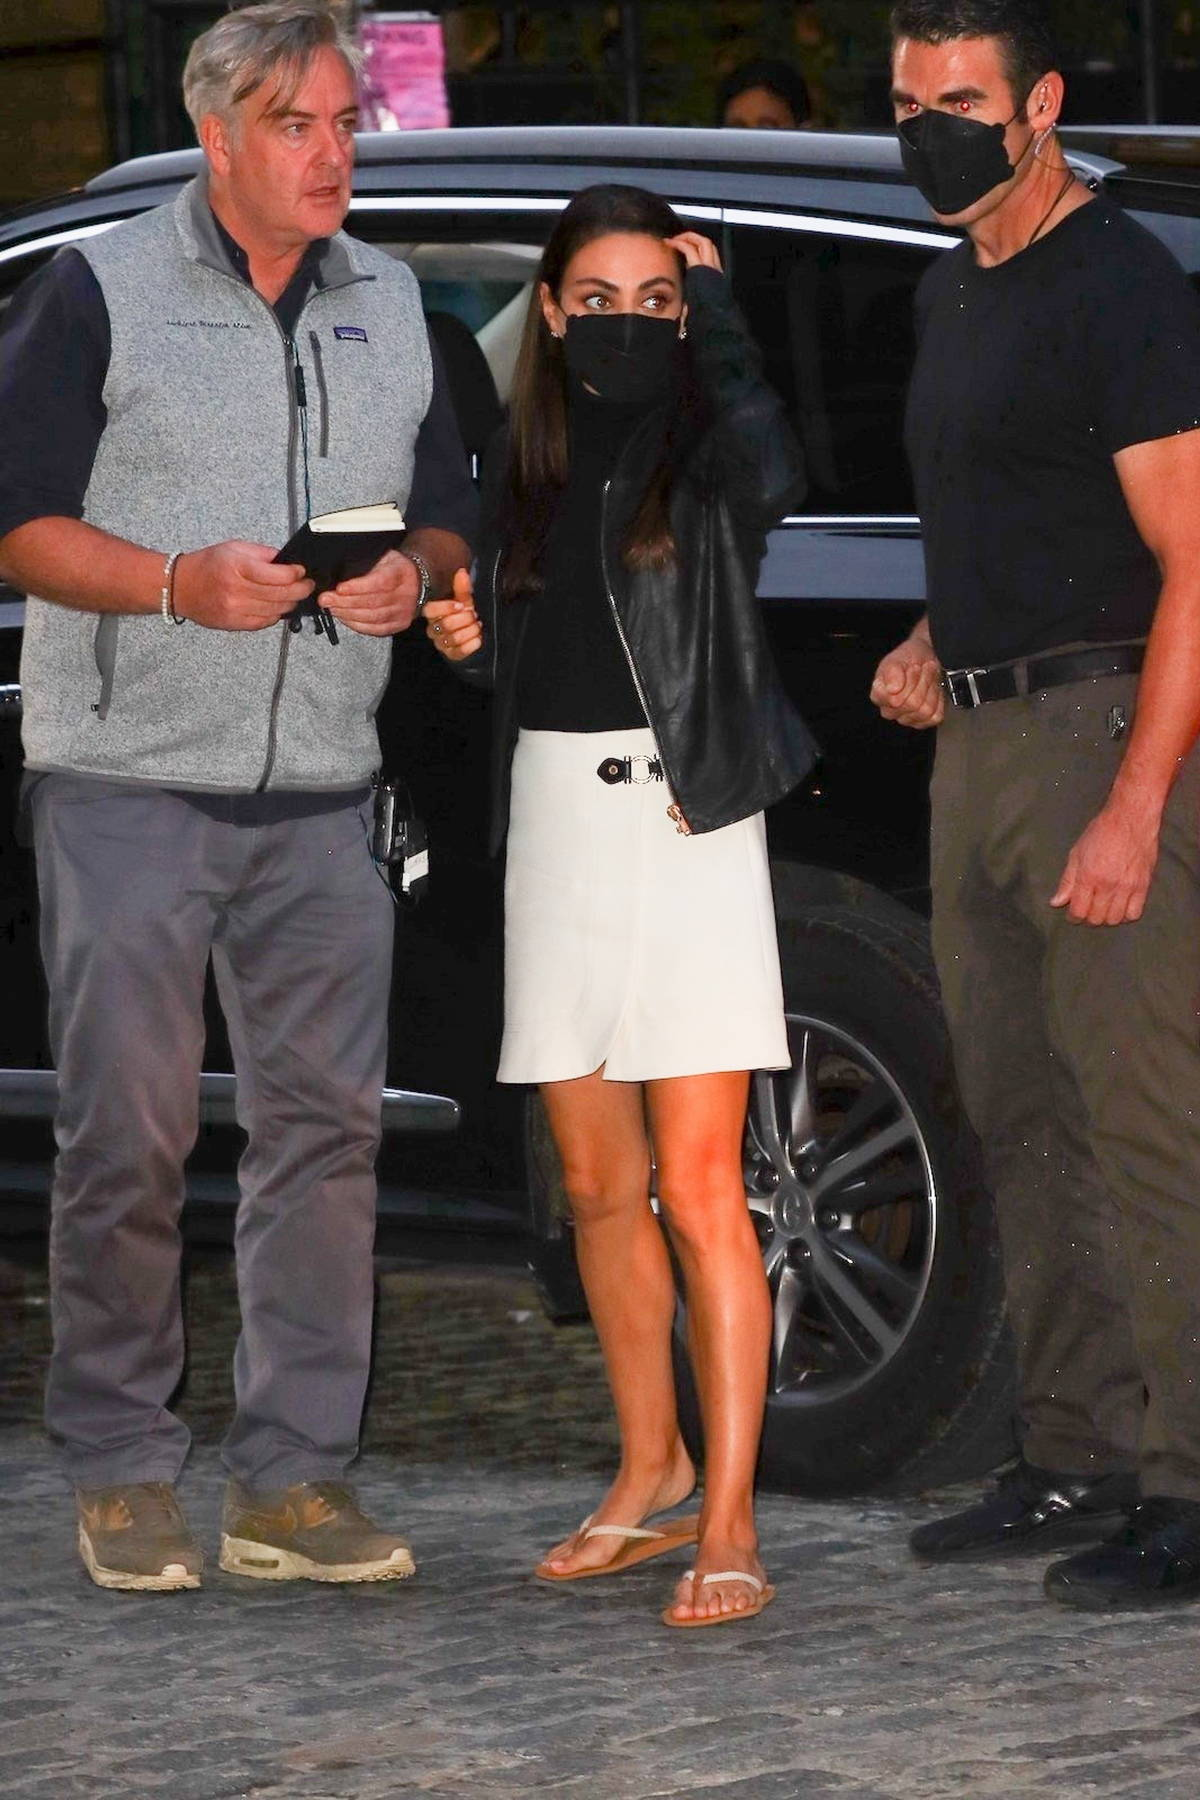 Mila Kunis seen wearing a white skirt, a leather jacket, and sandals while on set of 'Luckiest Girl Alive' in New York City